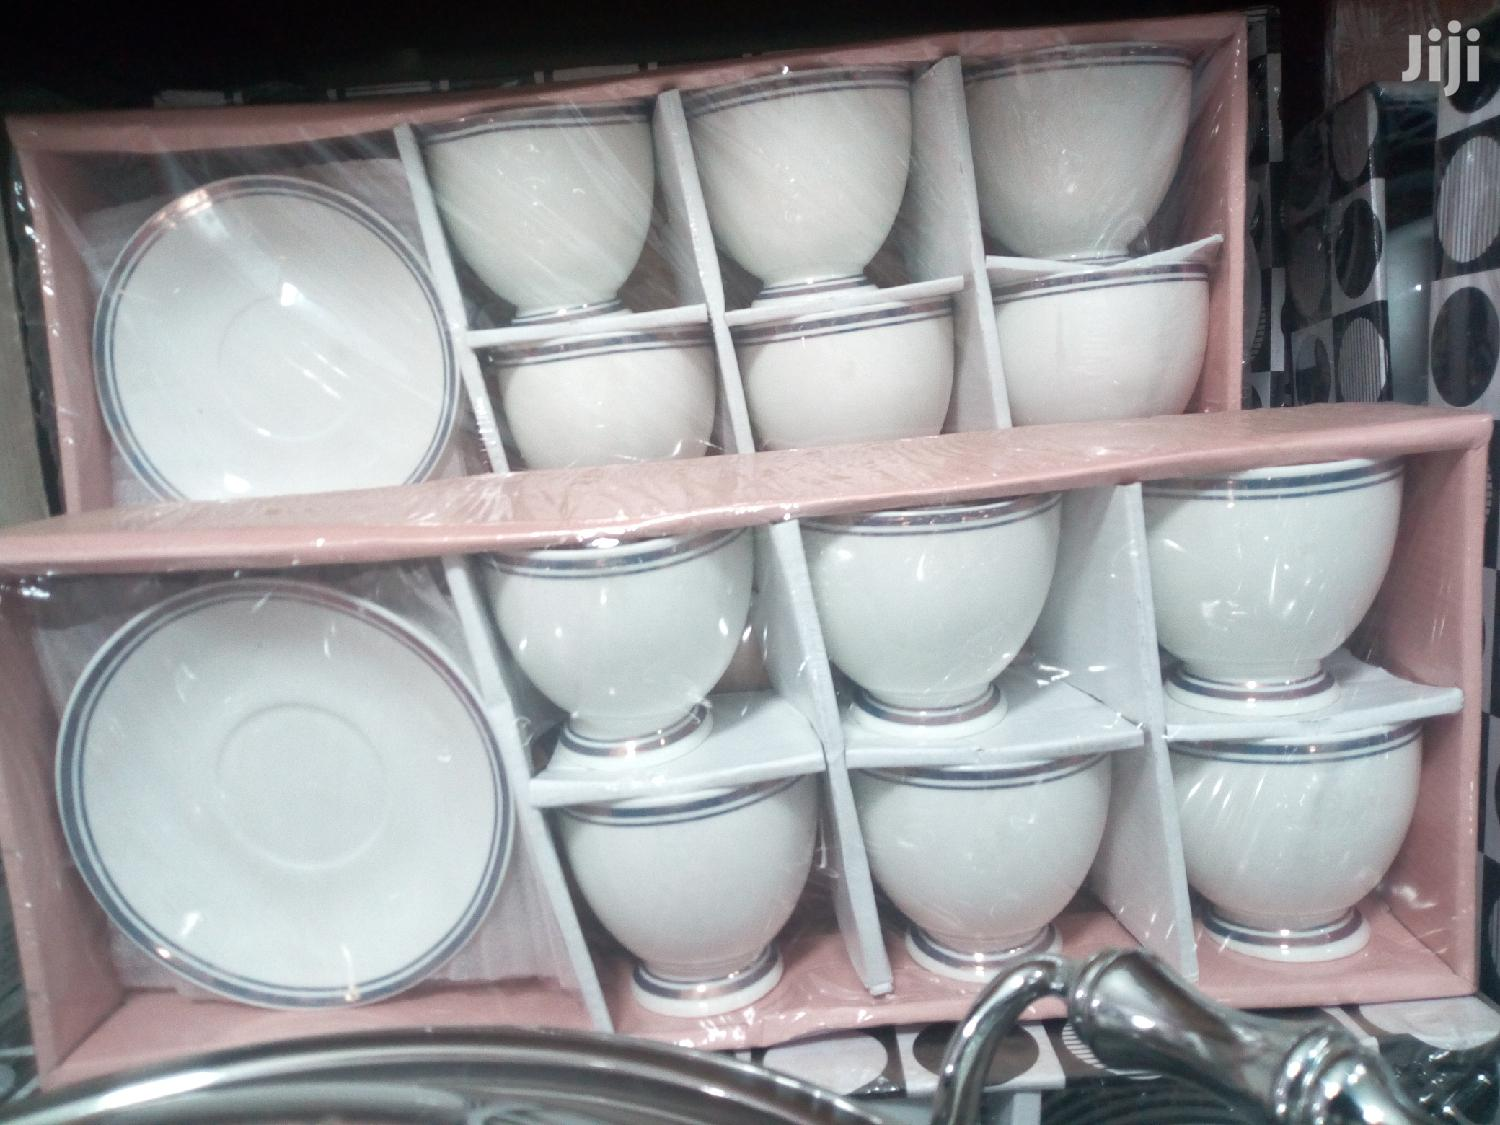 Cups And Saucer | Kitchen & Dining for sale in Kampala, Central Region, Uganda